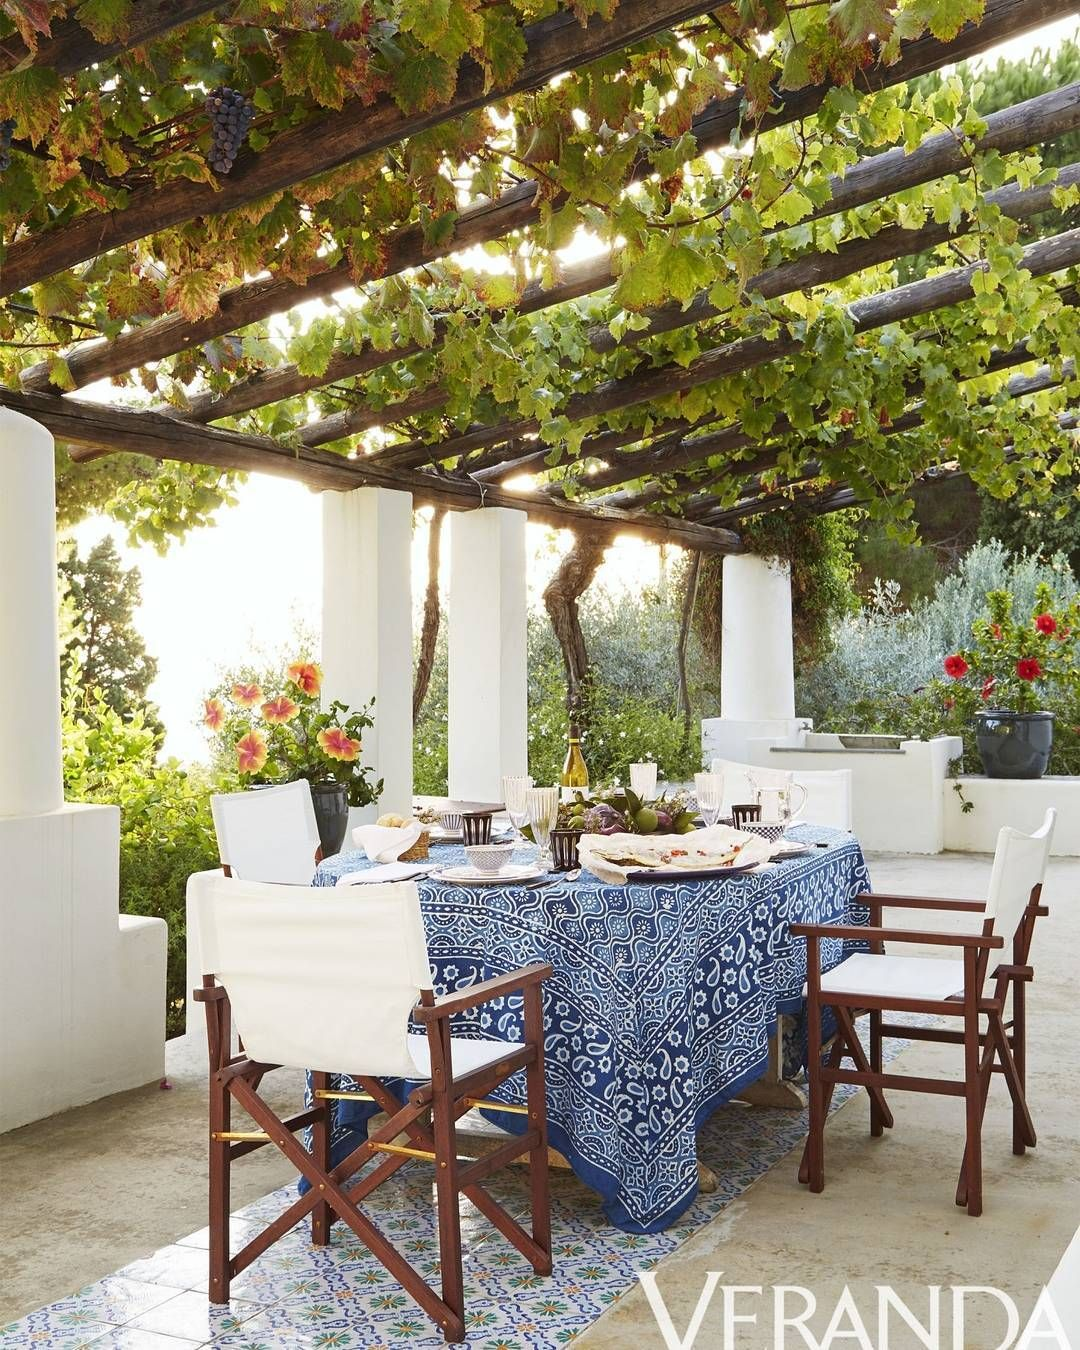 Gardens, Gazebos And Patios Galore! Tap The Link In Our Bio For The Most  Stunning Outdoor Rooms.